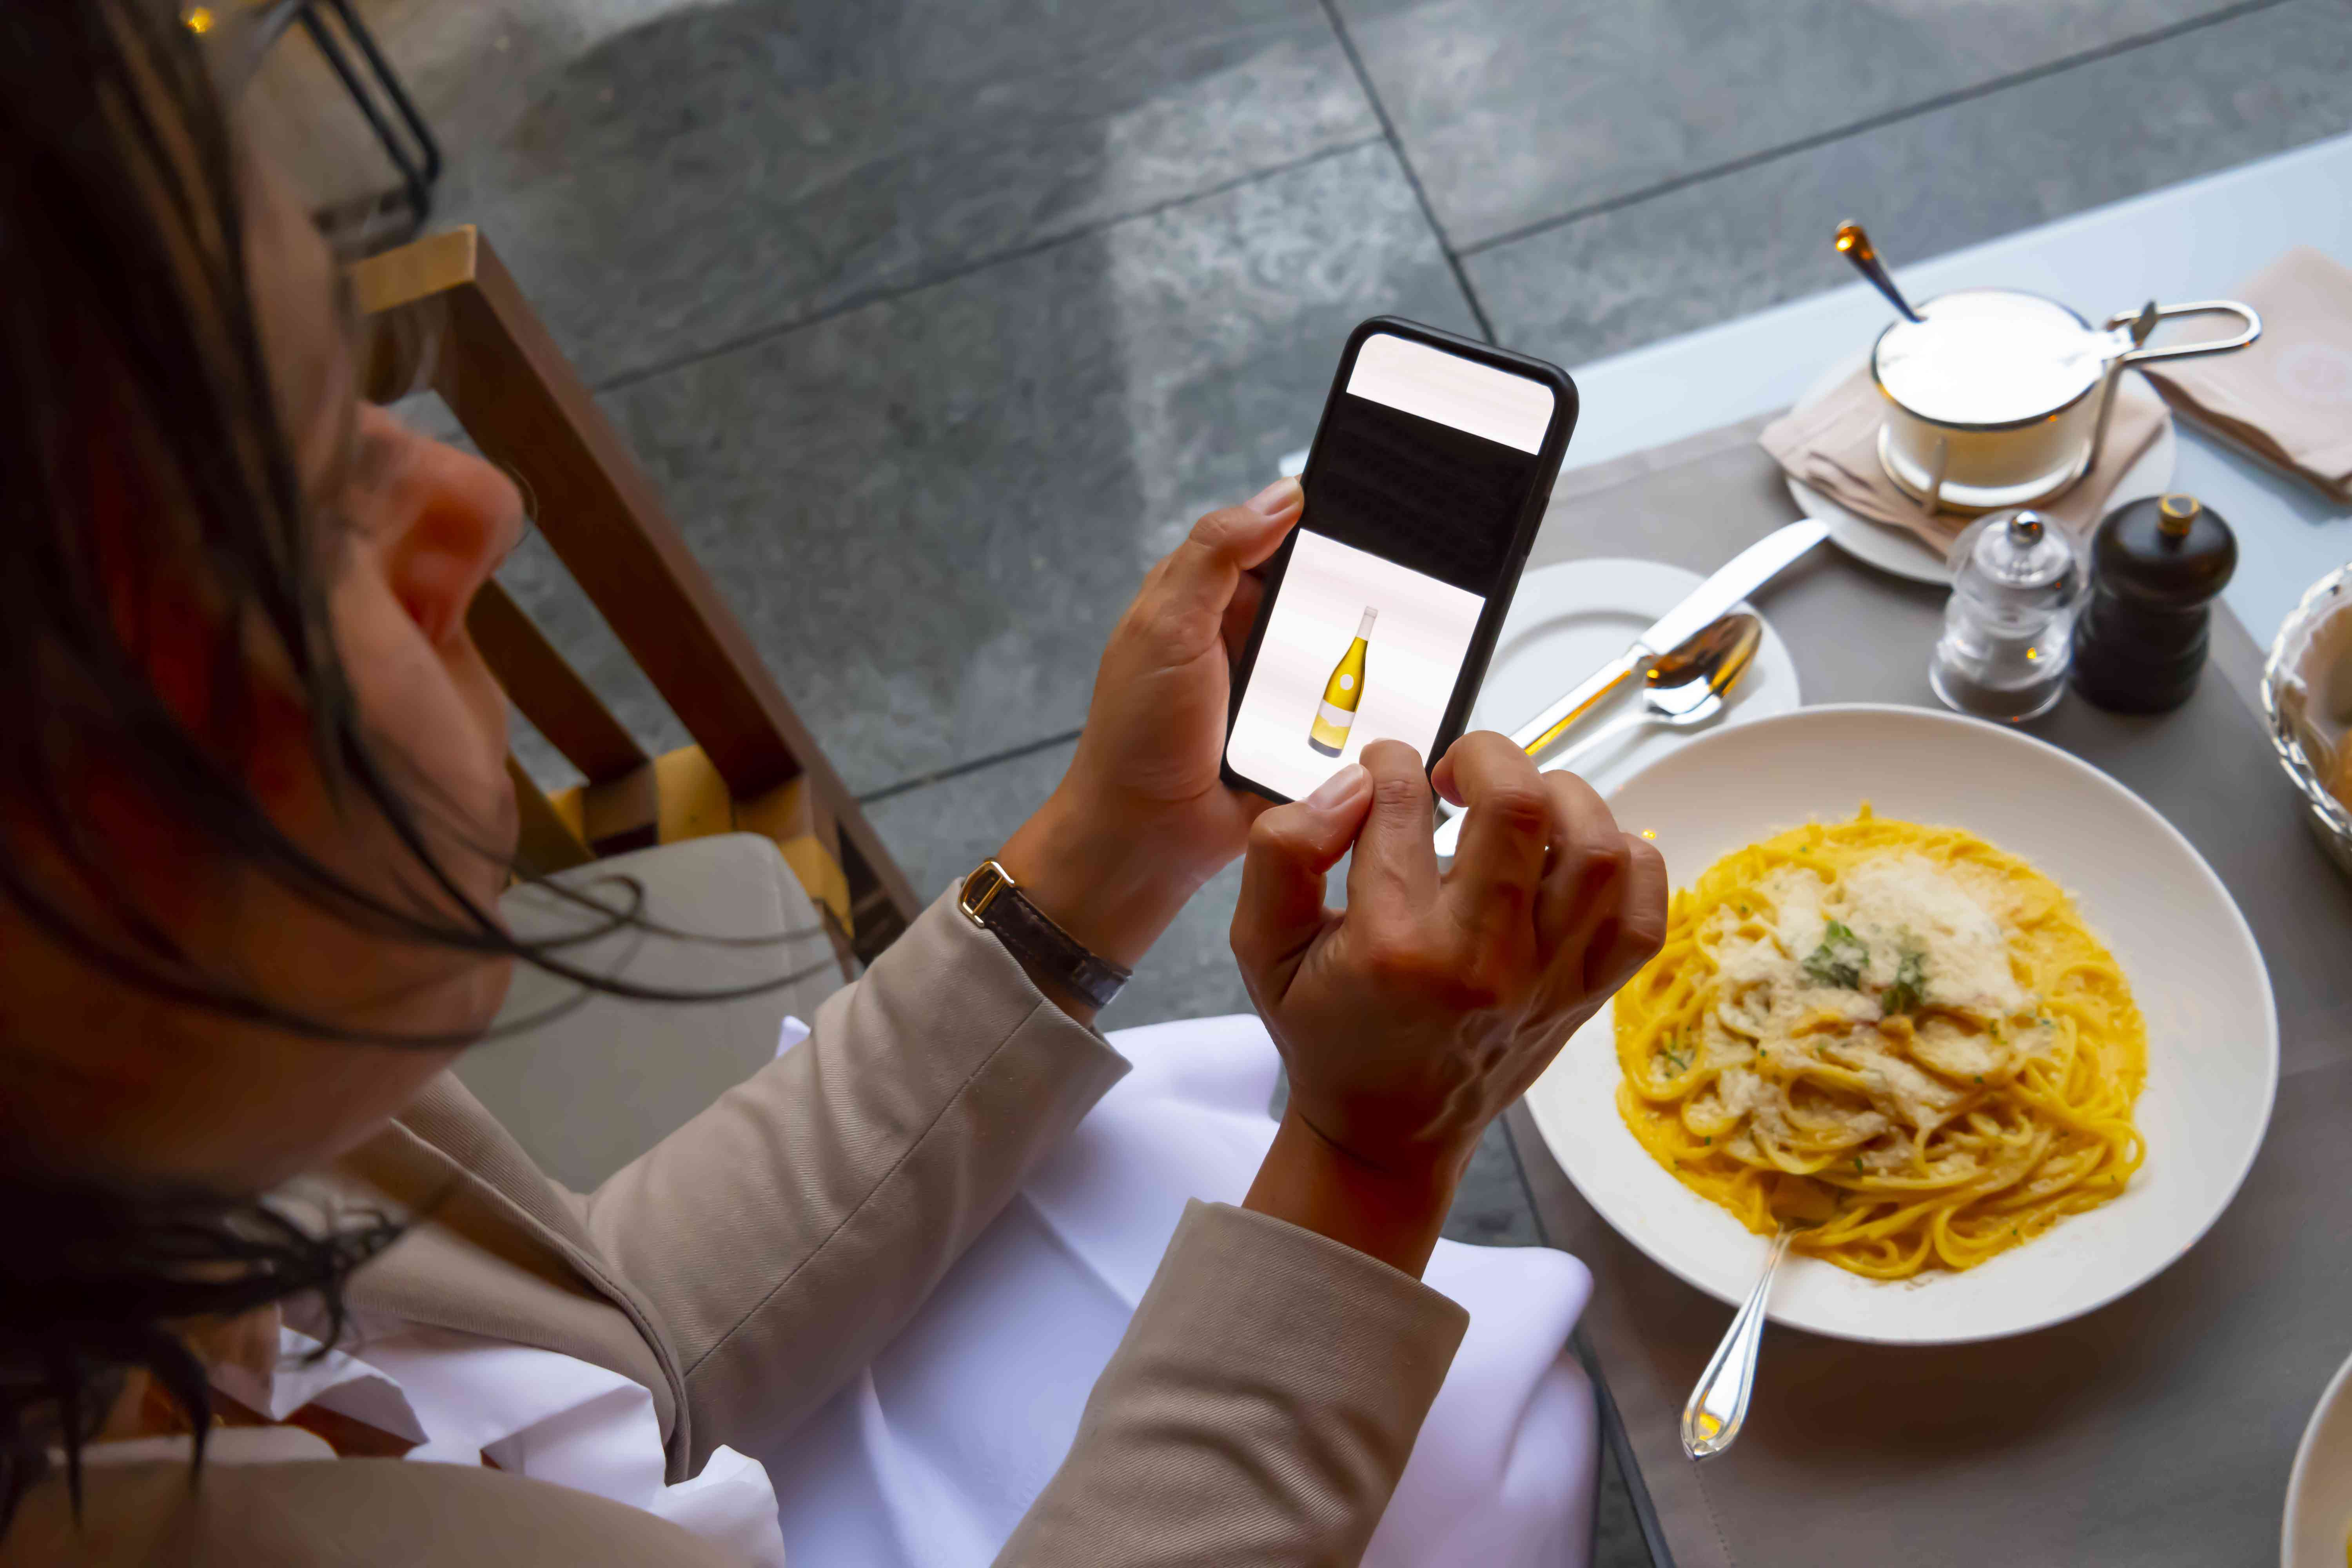 Someone looking an image of a bottle on their smartphone while a bowl of food sits nearby.